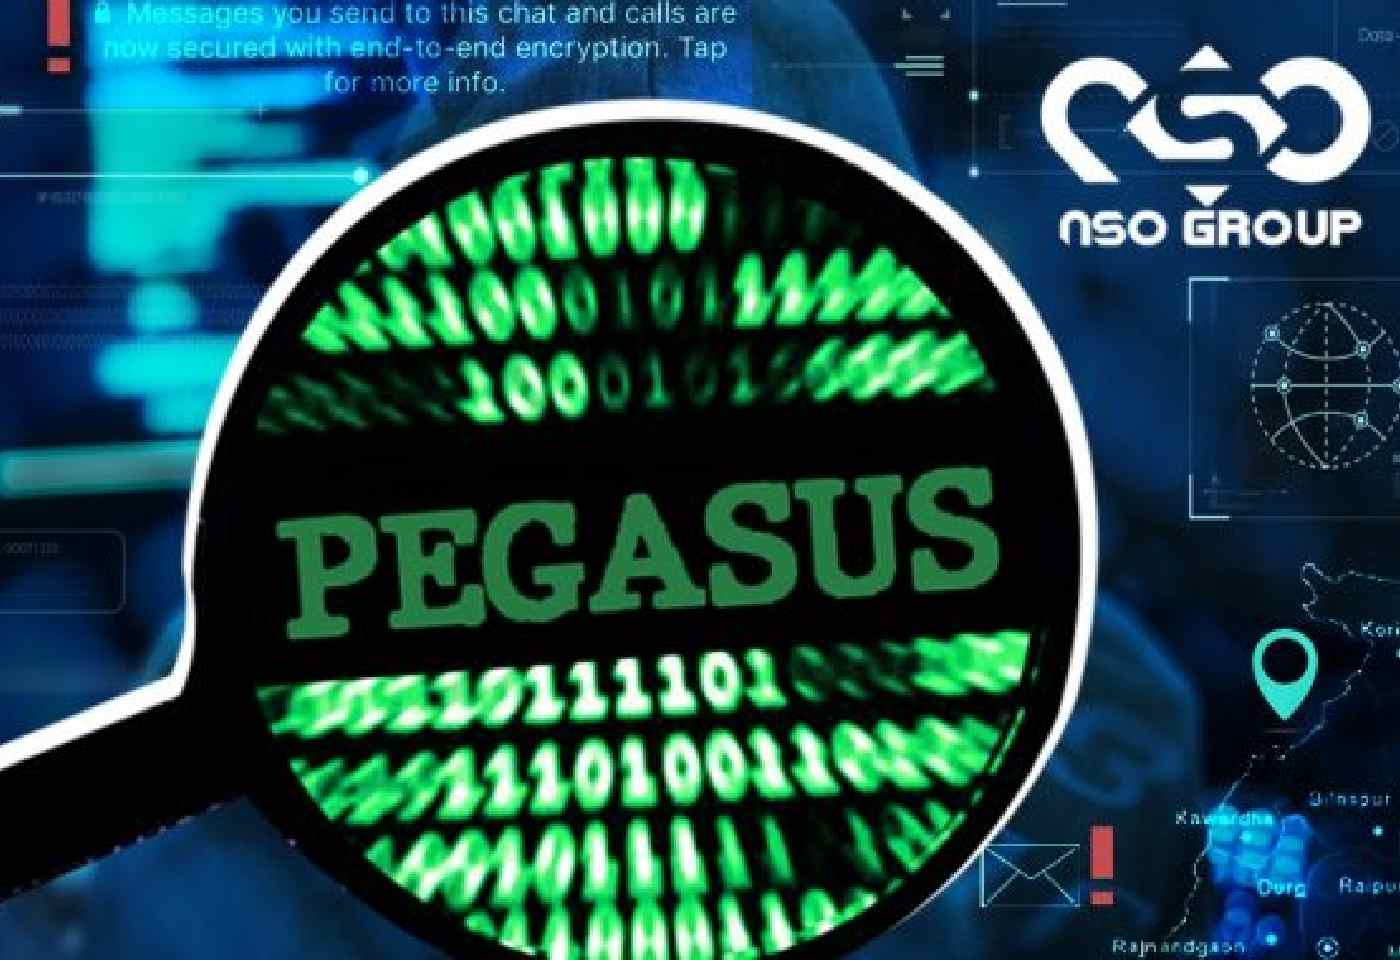 Pegasus Scandal French Government Probe Opened Into Alleged Pegasus Software Media Spying